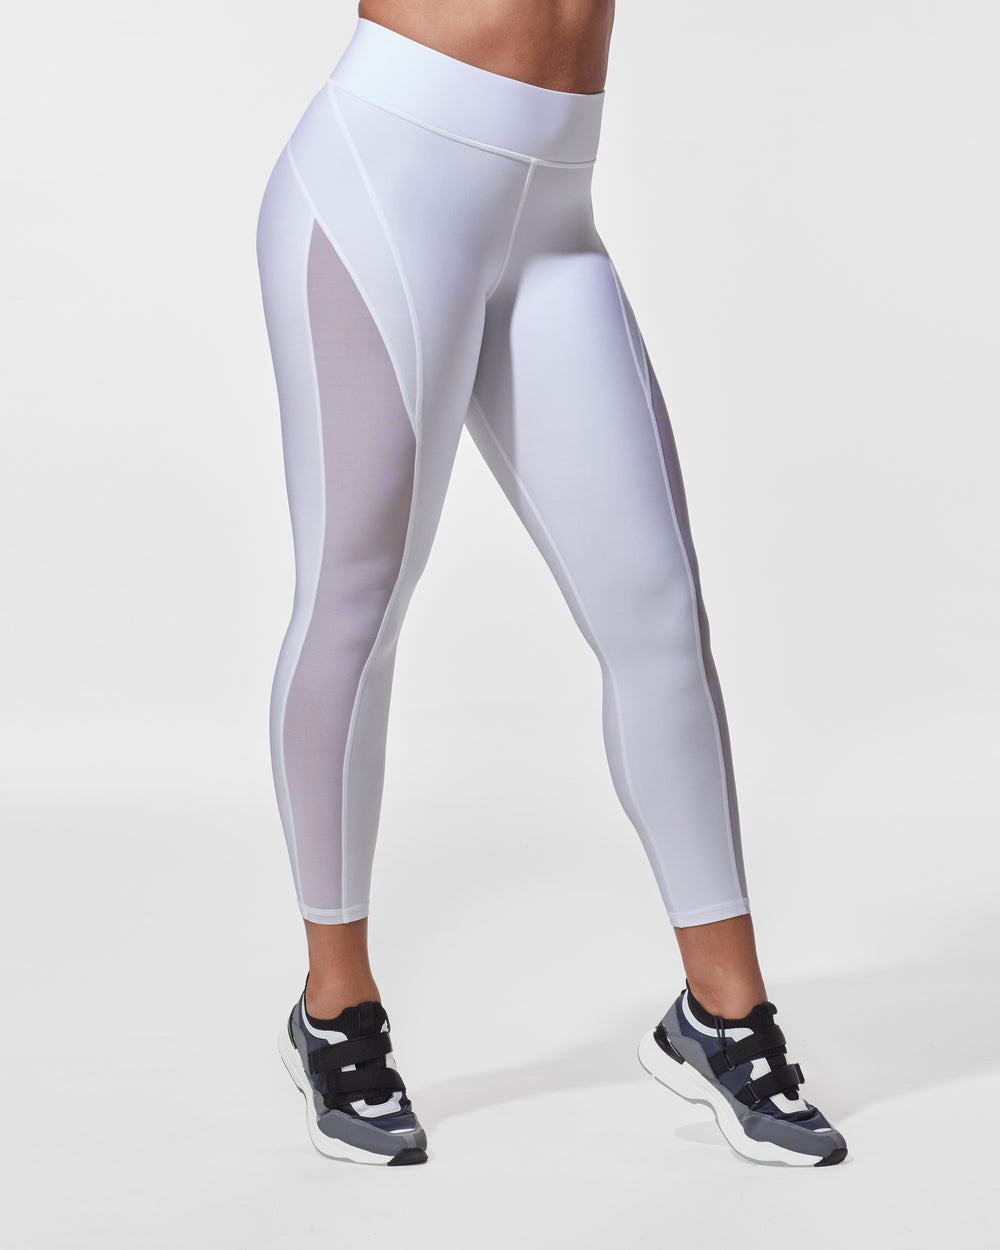 Raven Legging - White